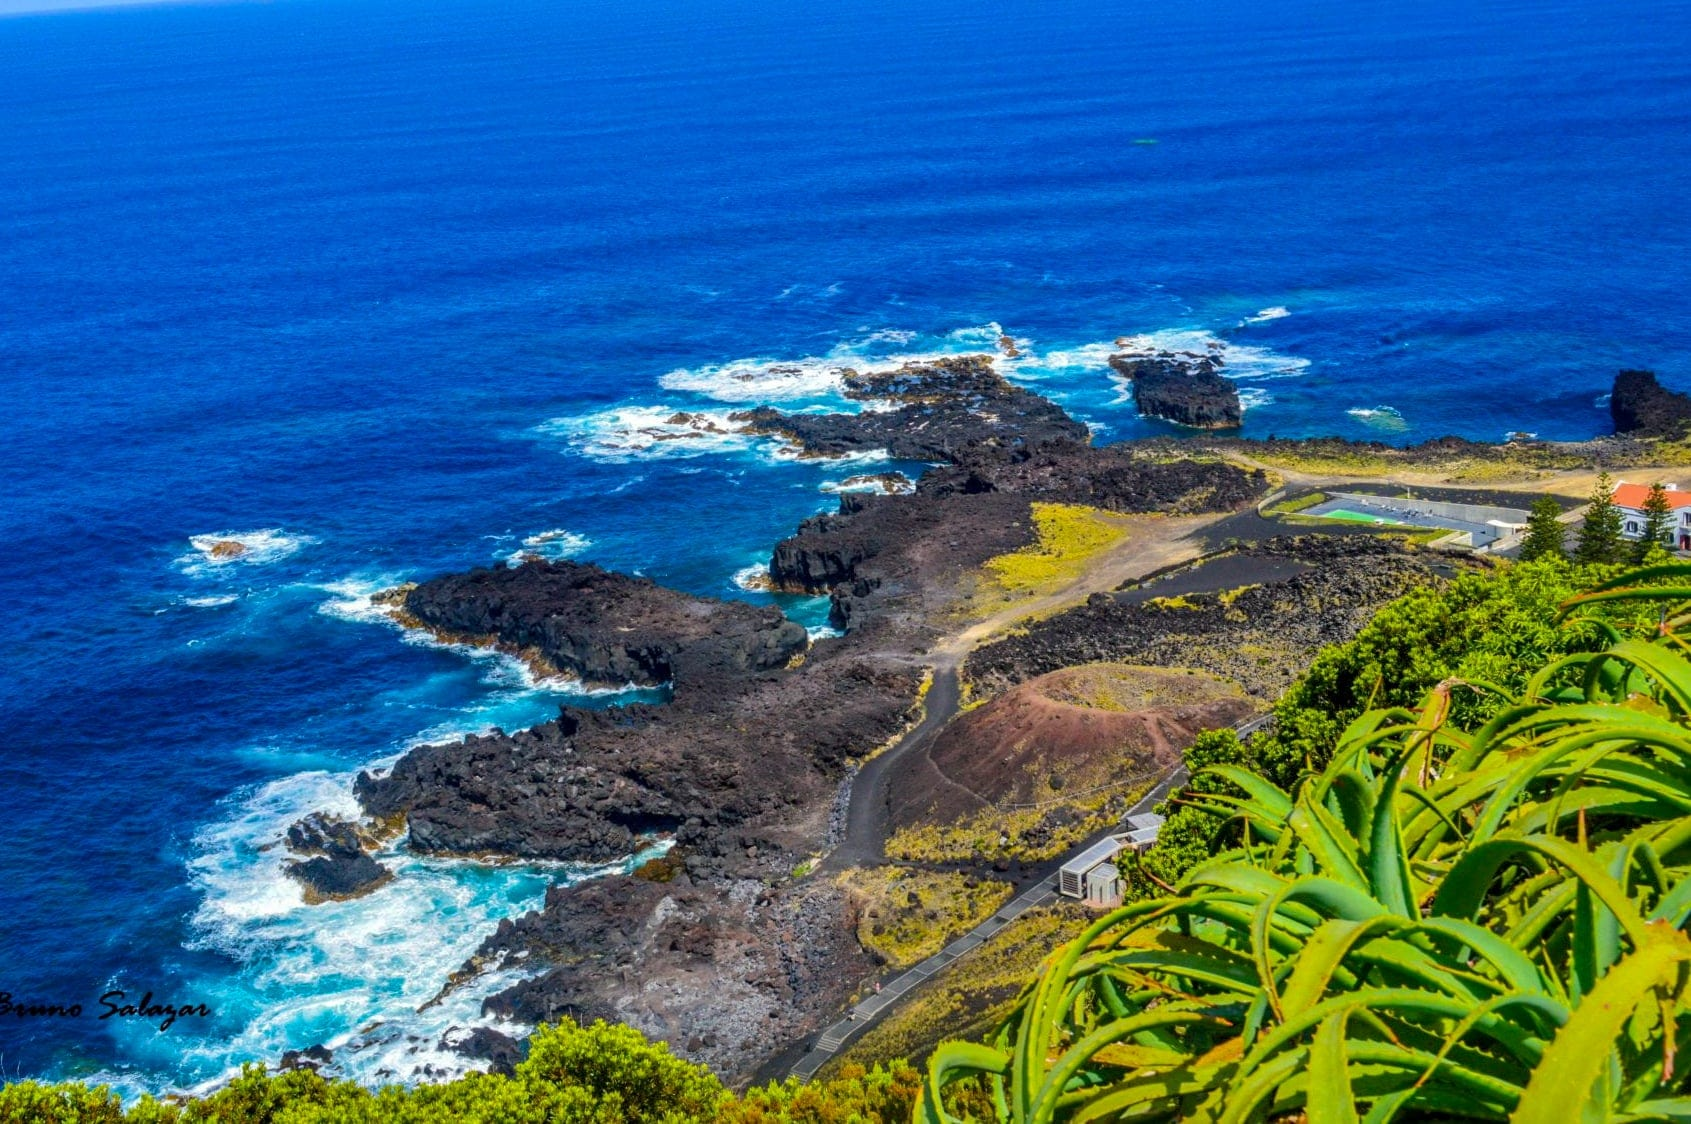 20 Unmissable Things To Do On São Miguel Island, Azores - Sao Miguel Hot Springs